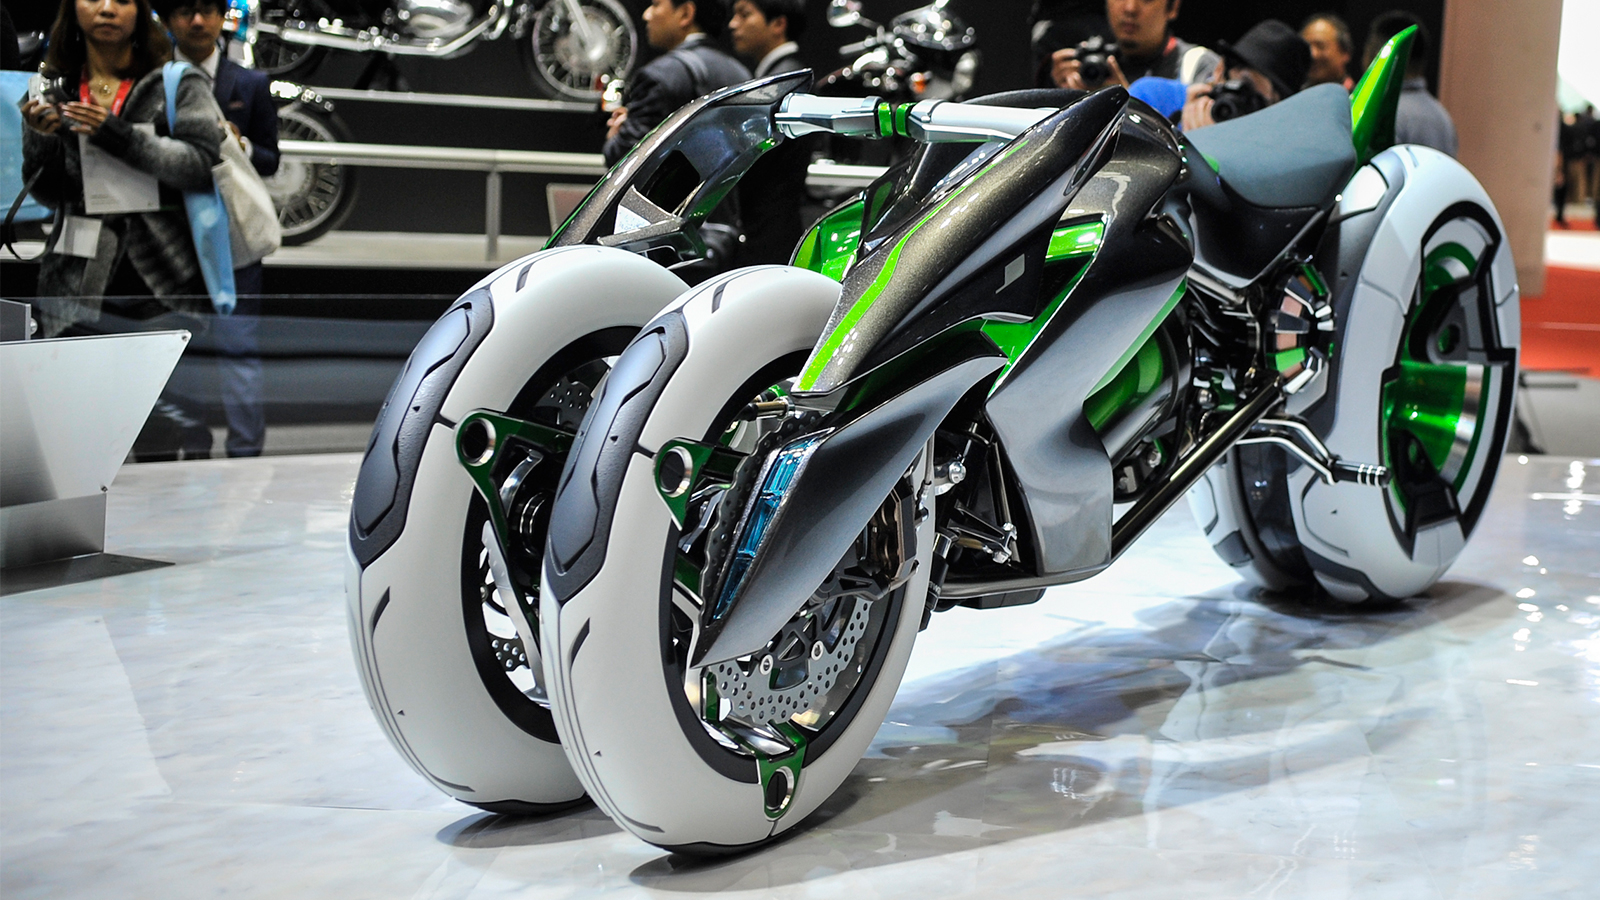 Kawasaki Built A Time Machine And Stole A Bike From The